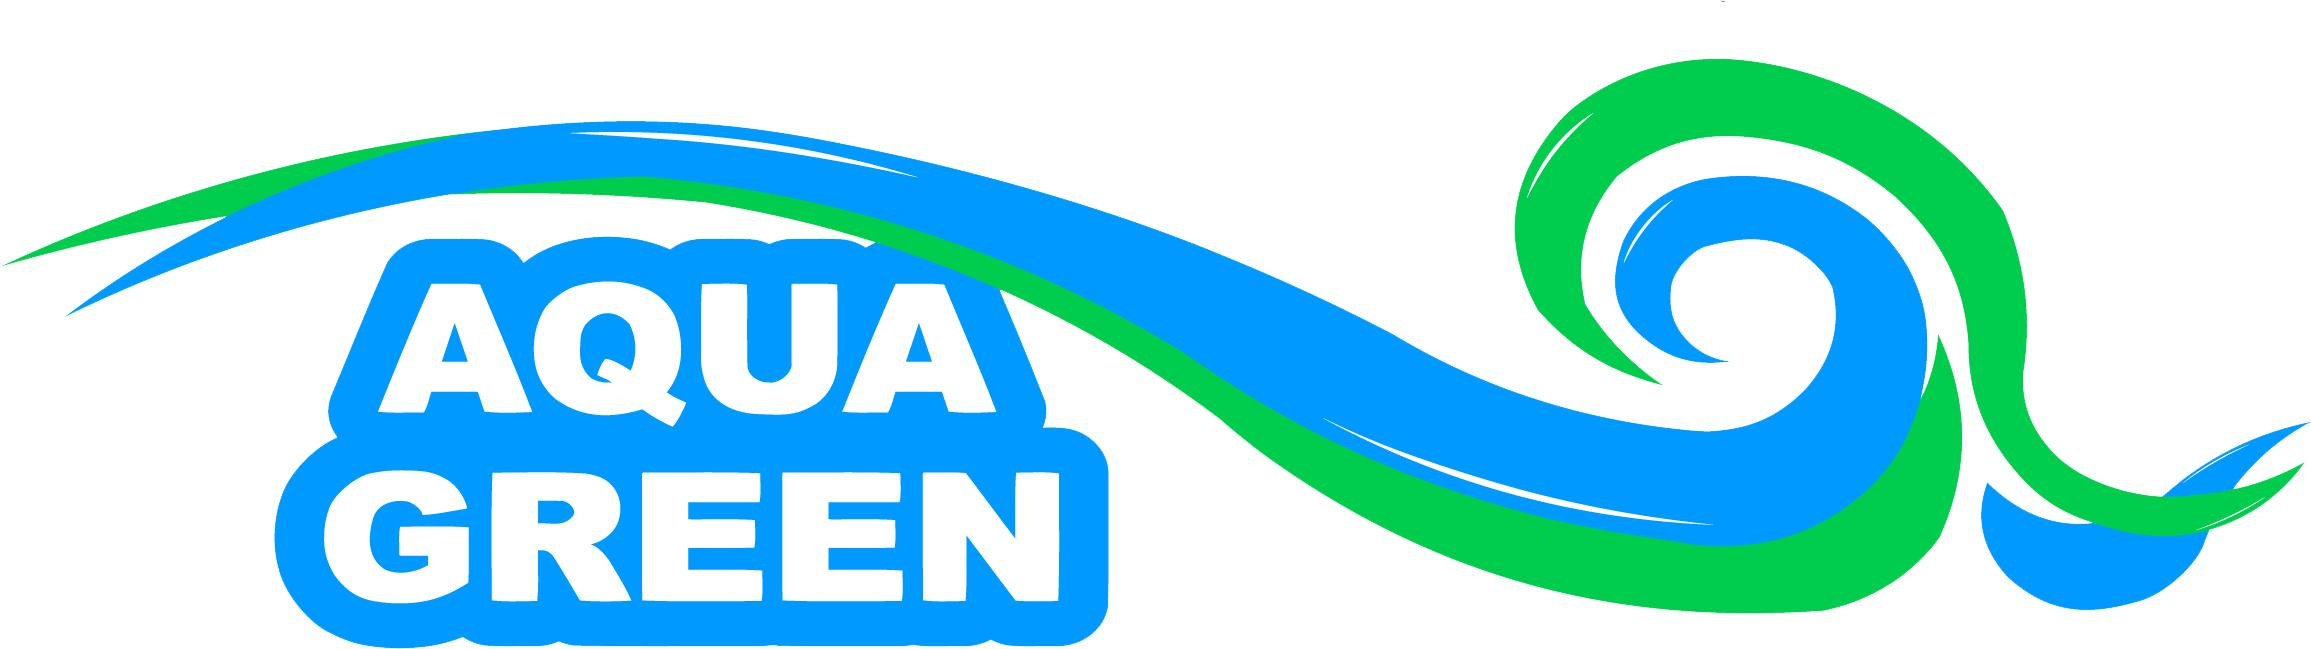 aquagreen logo_13_1